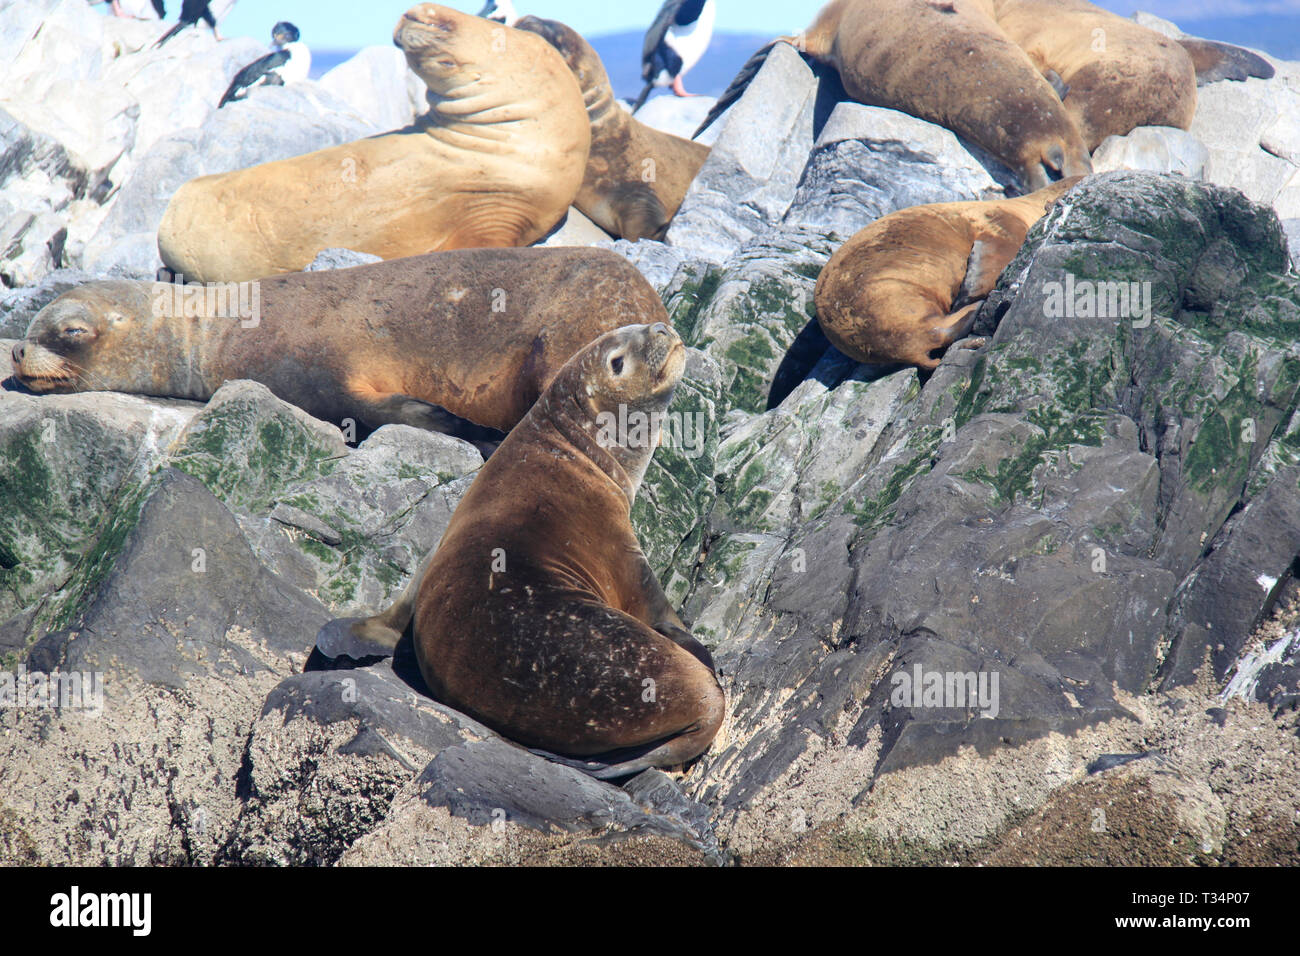 Group of southern sea lions (Otaria flavescens) lying on rocks, Tierra del Fuego islands, Argentina Stock Photo